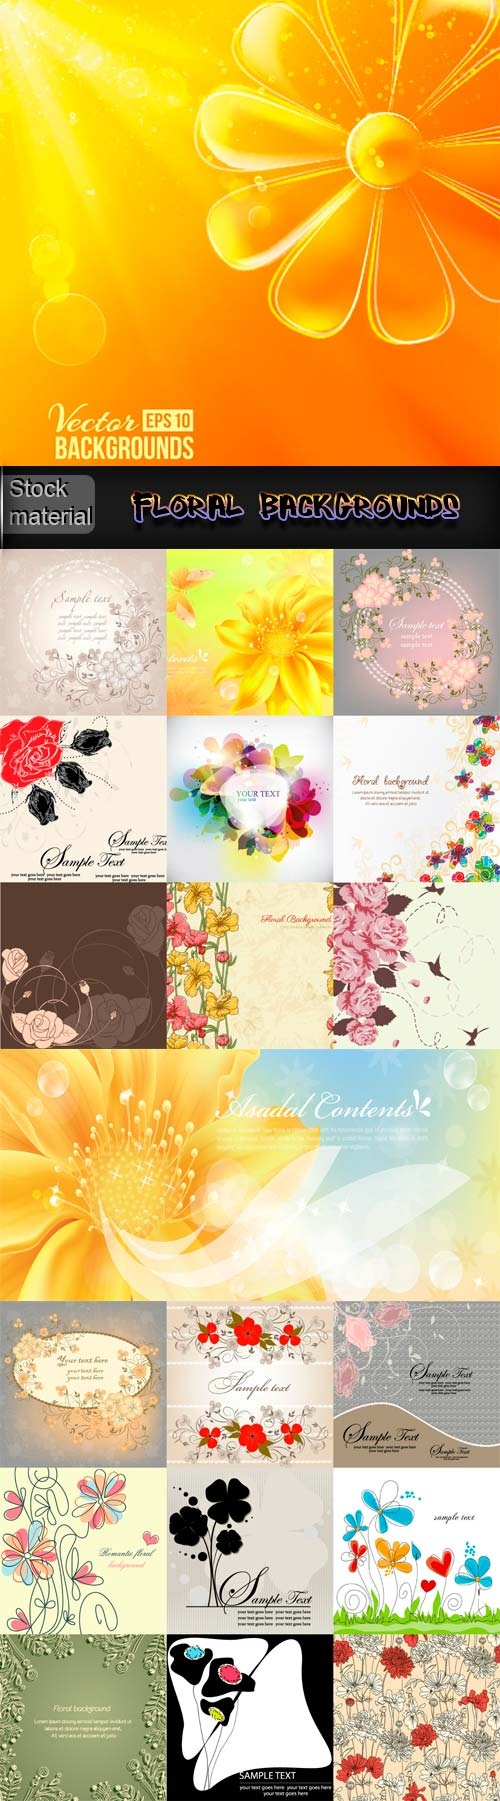 Excellent floral vector backgrounds #1 (28 файлов)